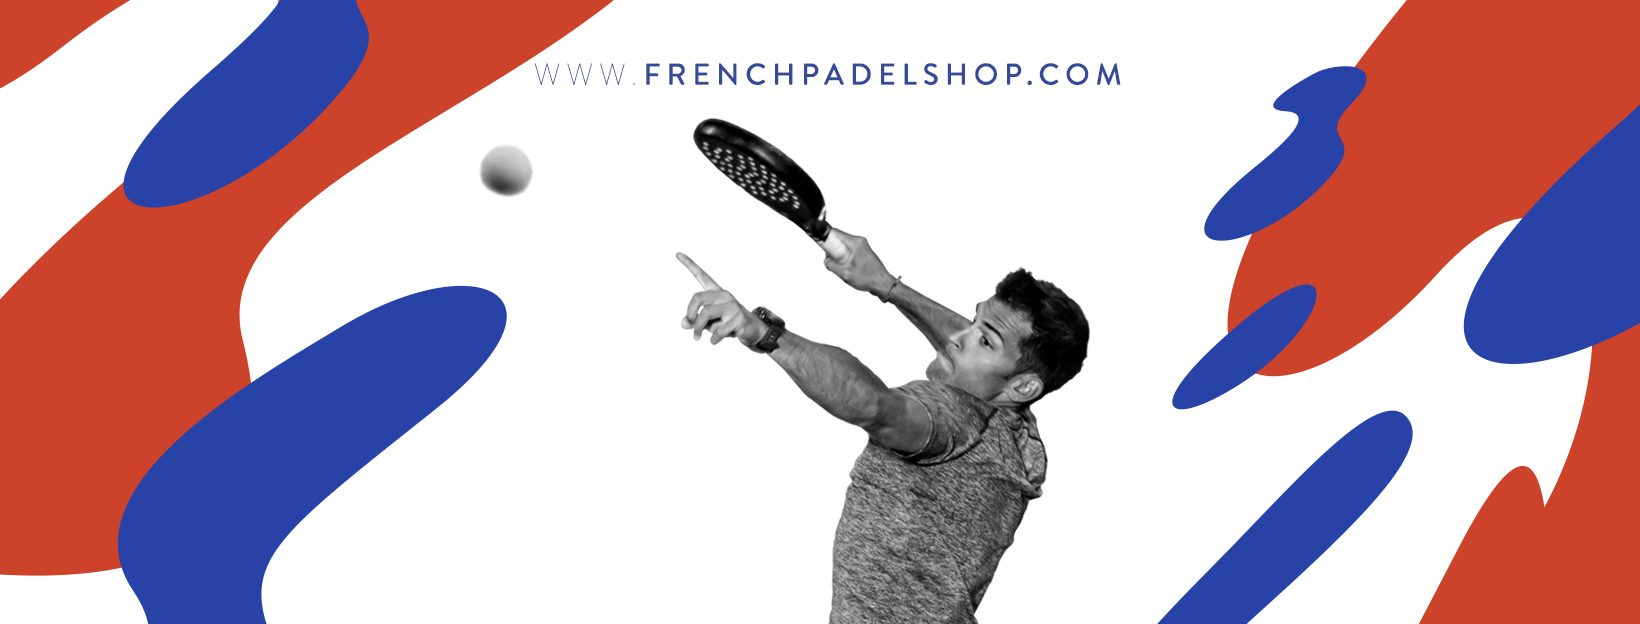 FRENCH PADEL SHOP LANCE LA COUPE DE FRANCE DE LA RAQUETTE DE PADEL !